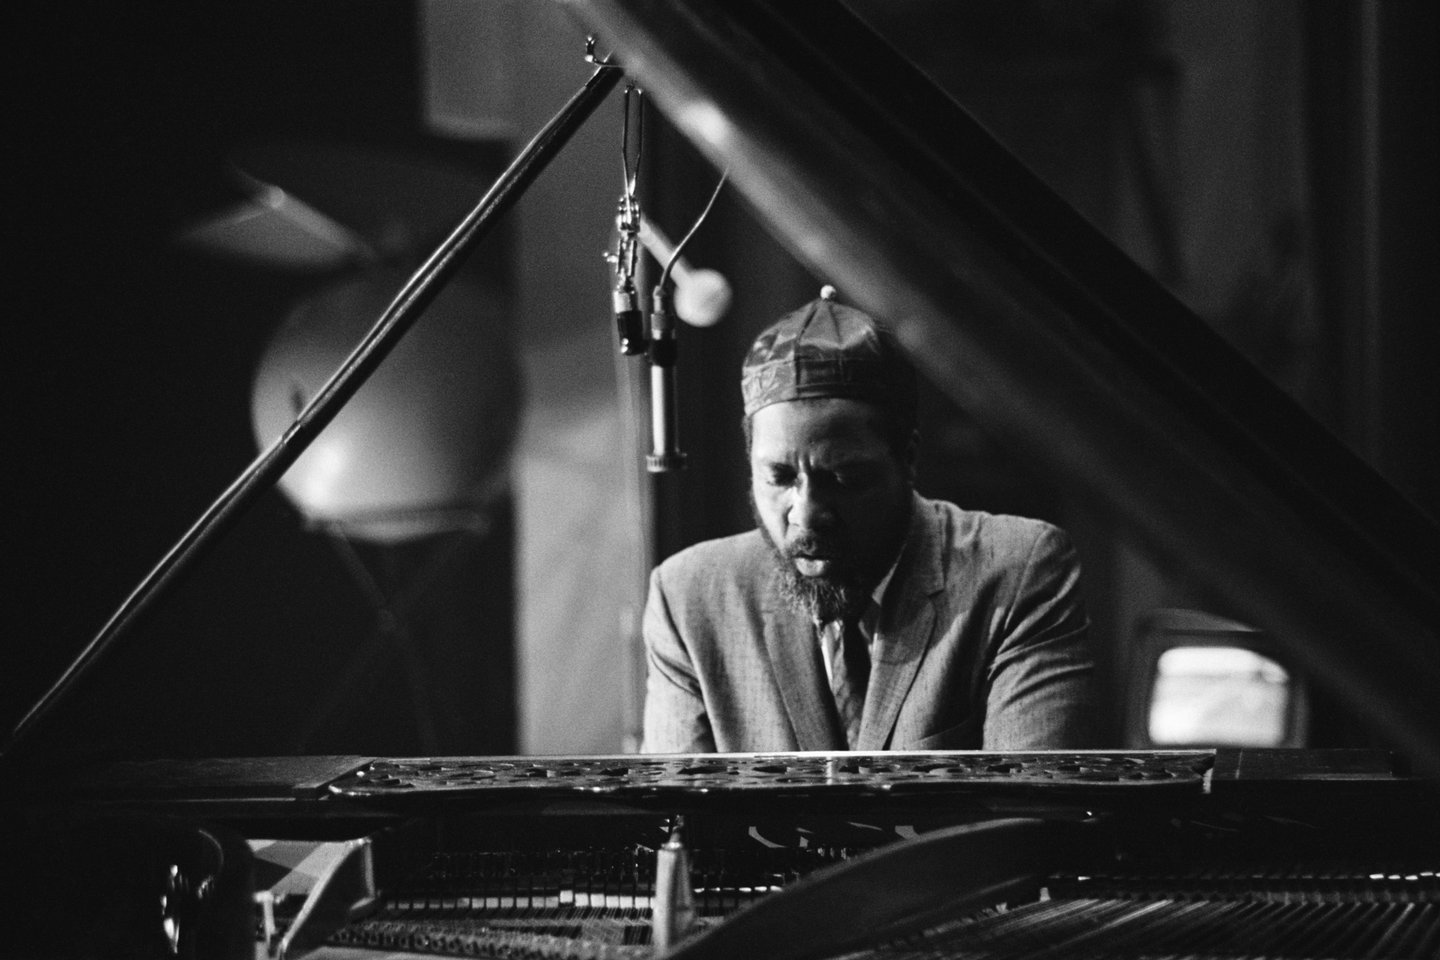 American Pianist Thelonious Monk